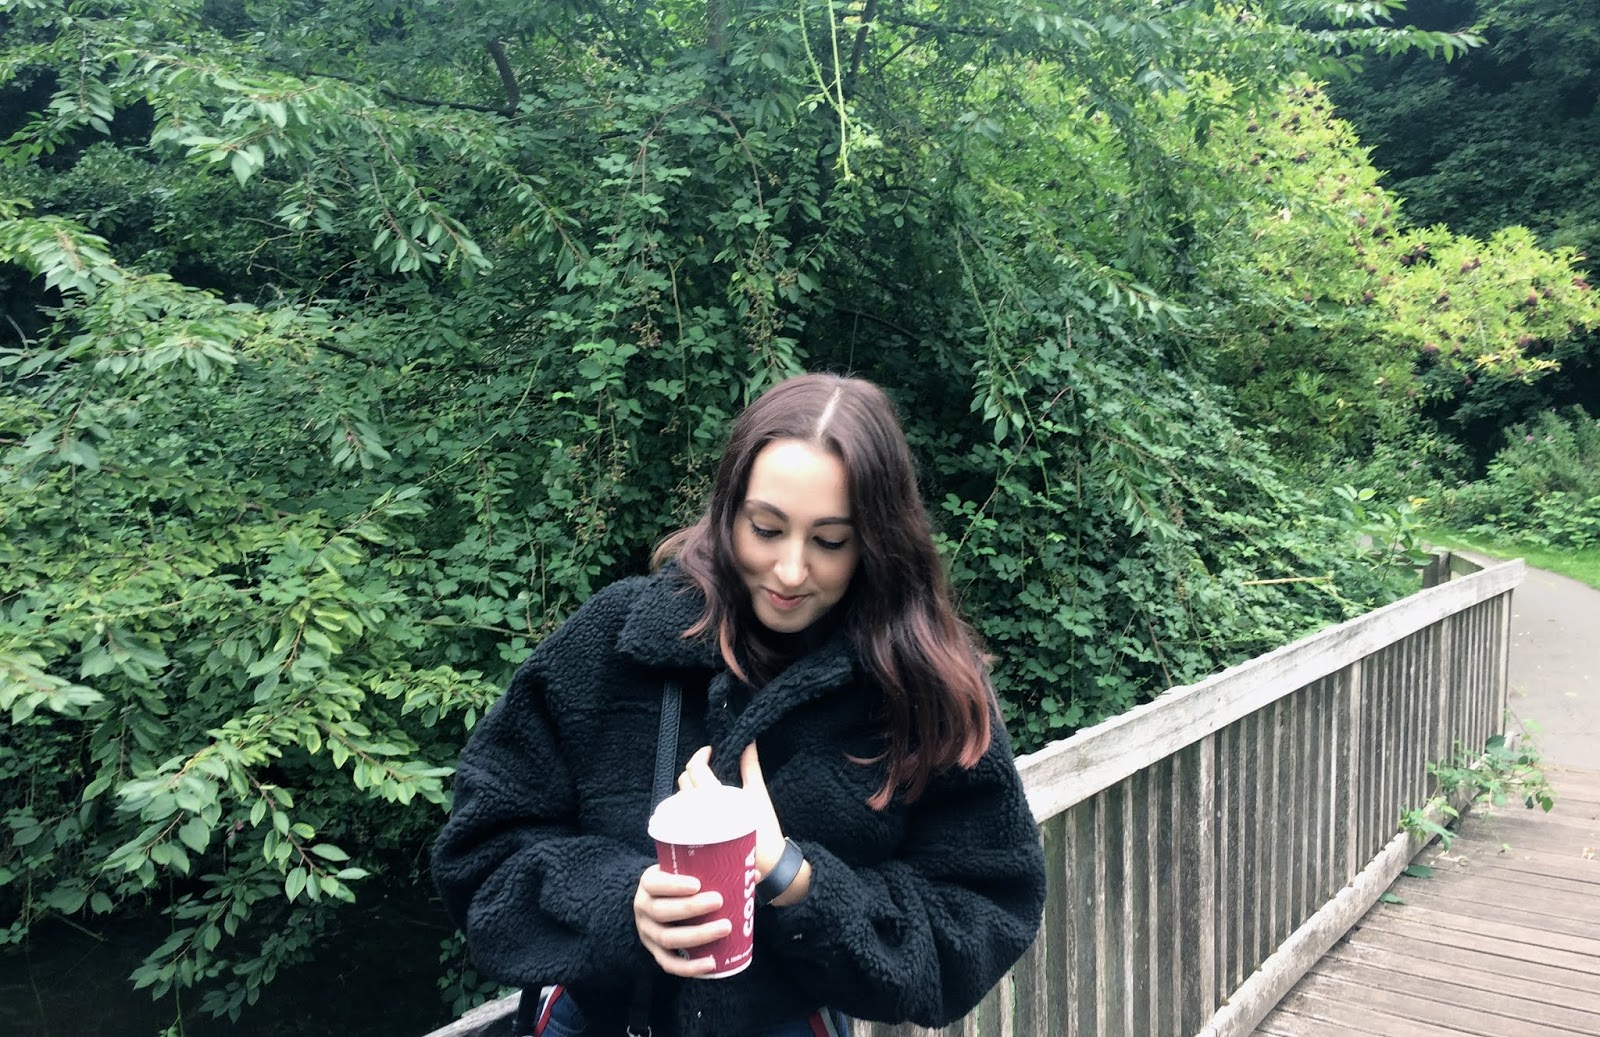 Outdoors on a bridge wearing a cosy cropped black jacket